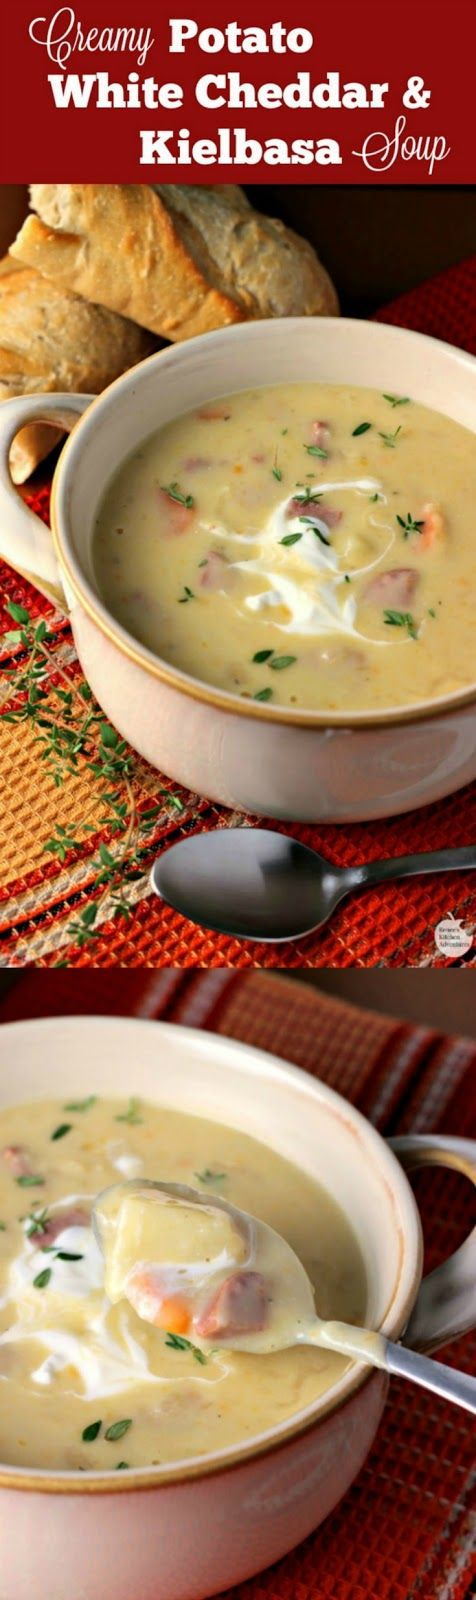 Creamy Potato, White Cheddar, and Kielbasa Soup   by Renee's Kitchen Adventures - msg 4 21+ Easy, hearty soup recipe perfect for the cooler weather!  A taste of old world Oktoberfest #OktoberontheFarm ad